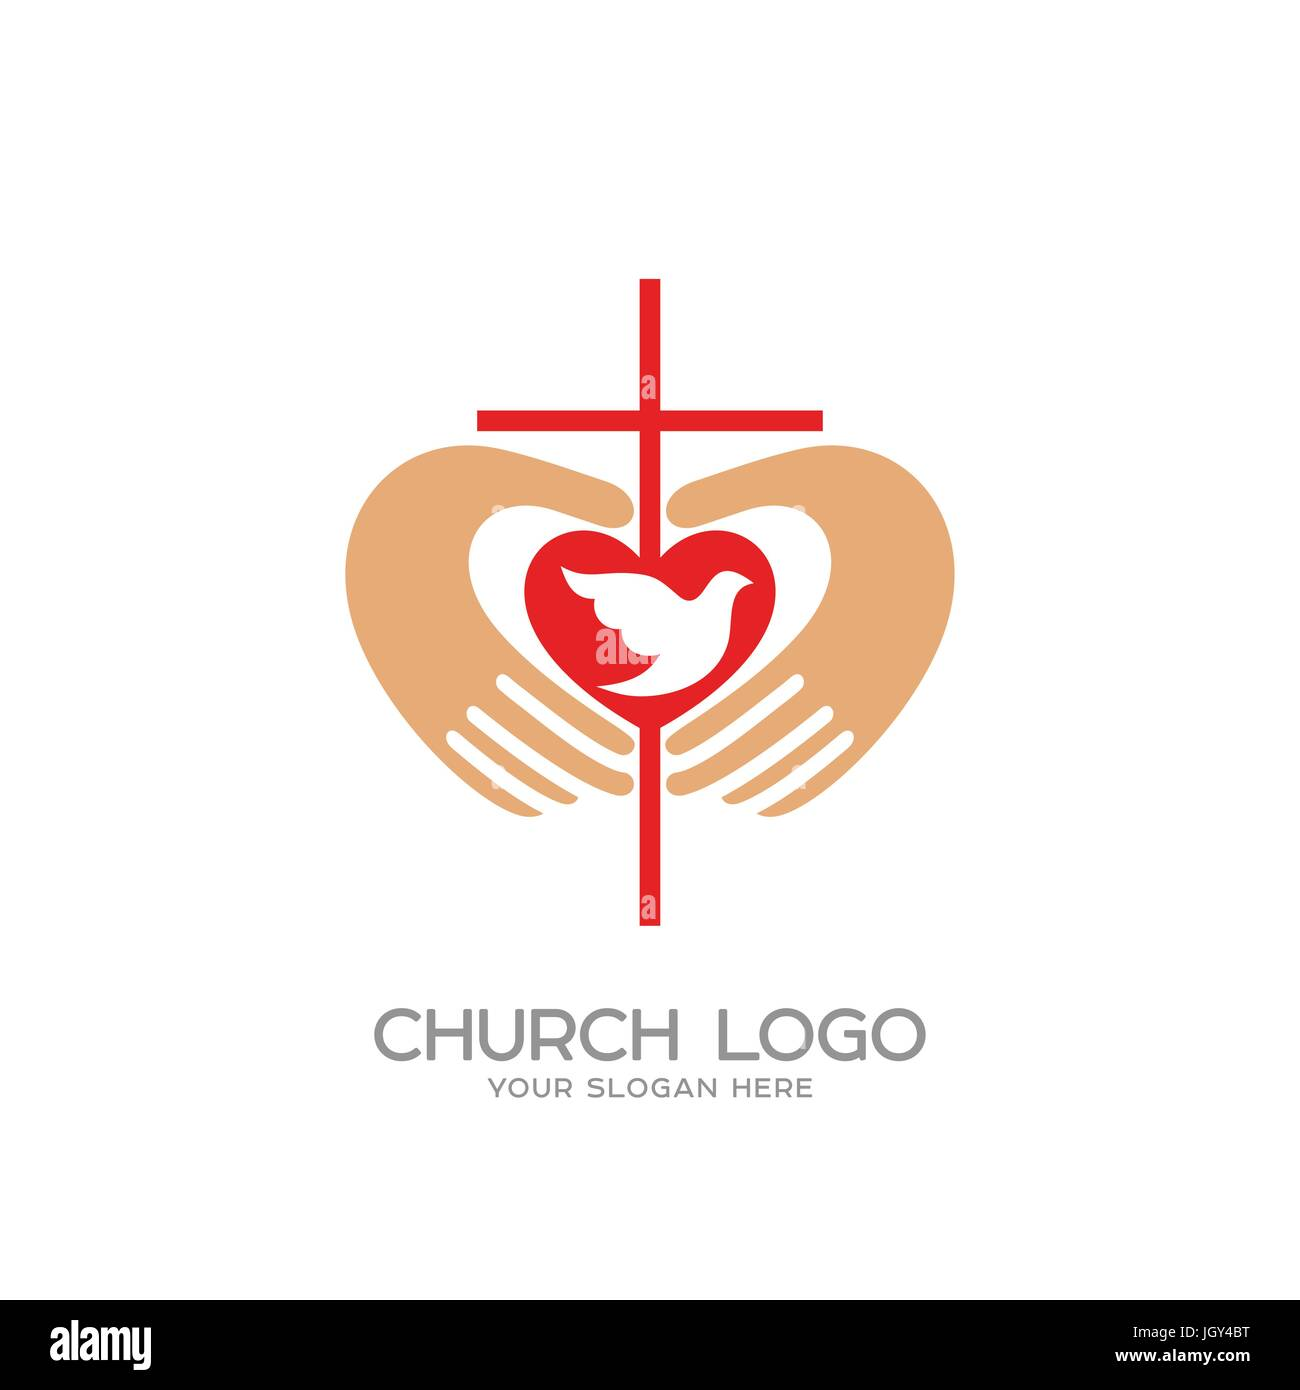 Church logo christian symbols the cross and the hands of christ church logo christian symbols the cross and the hands of christ the heart and the dove buycottarizona Image collections